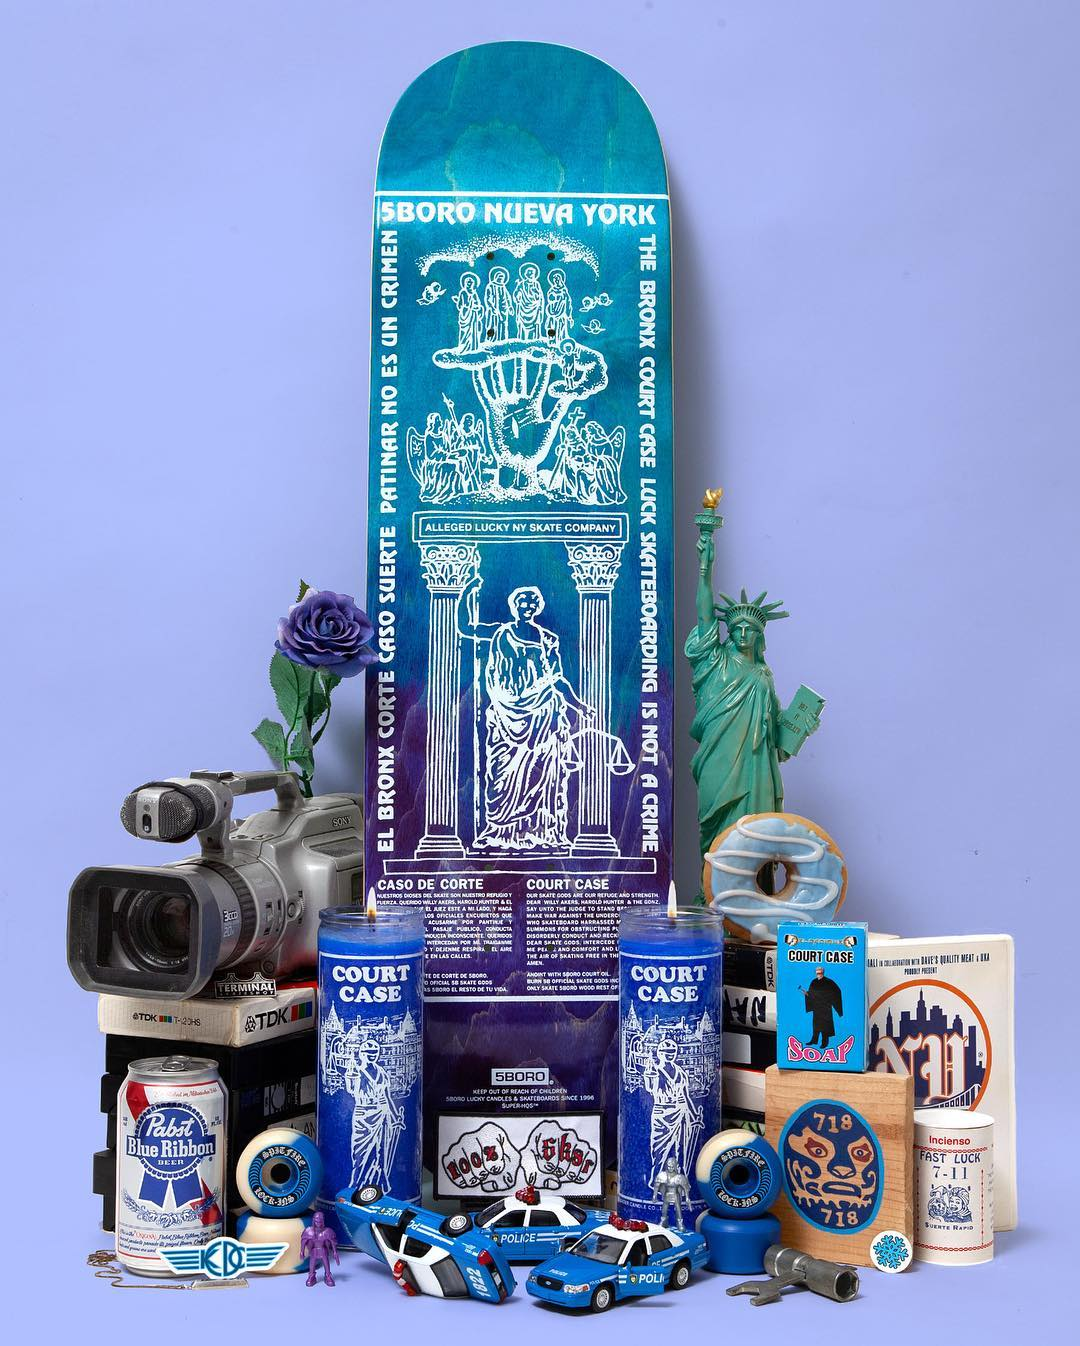 Lucky Candle Series Skateboard By 5boro Nyc 10